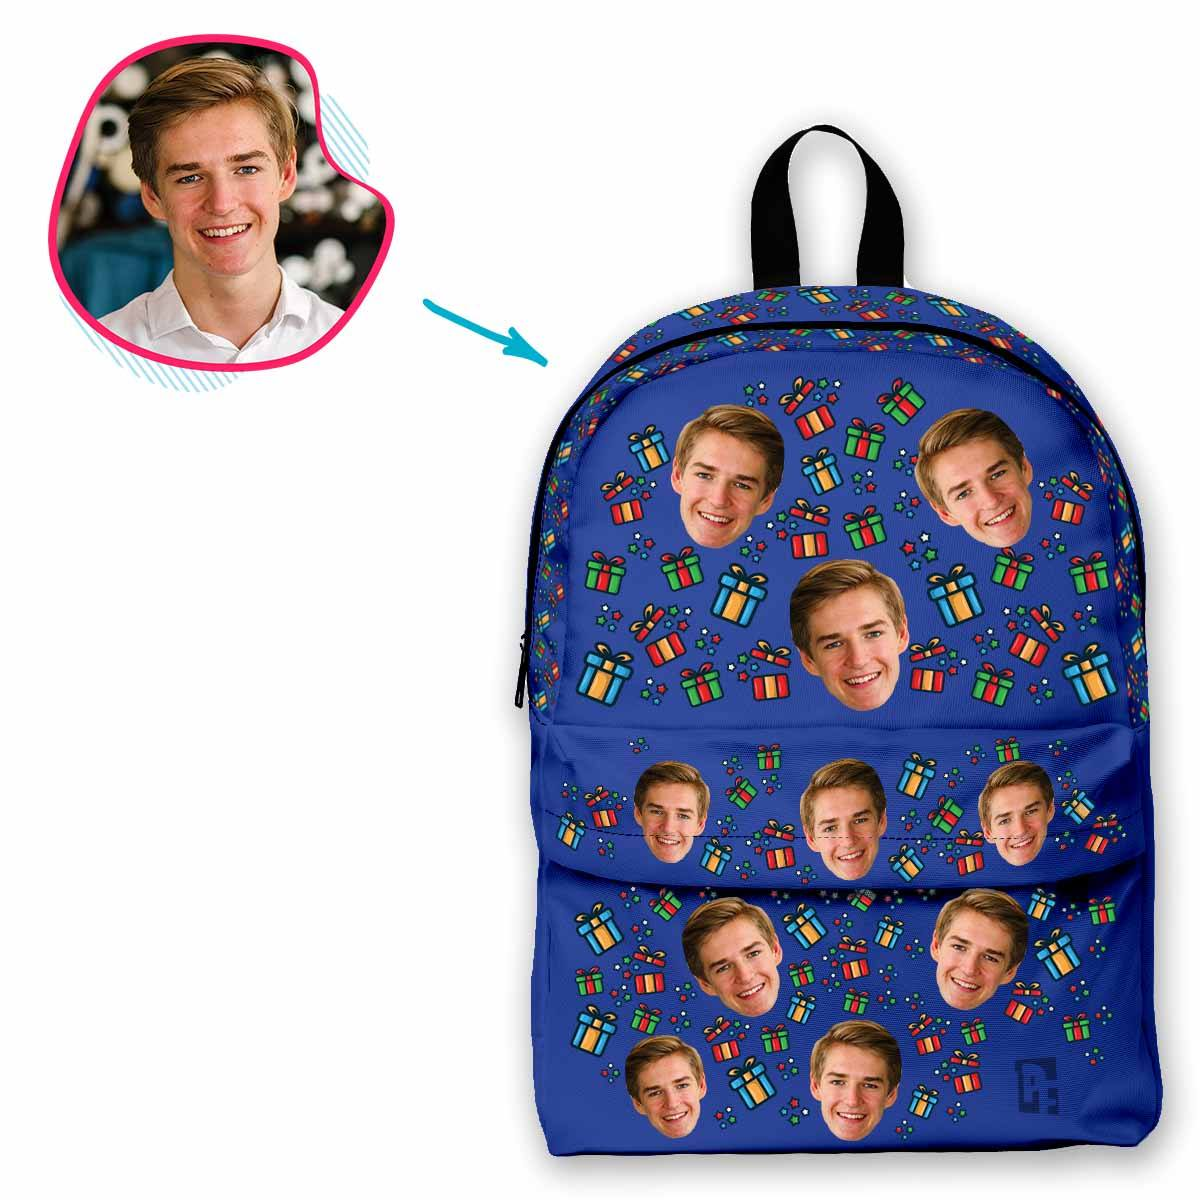 darkblue Gift Box classic backpack personalized with photo of face printed on it